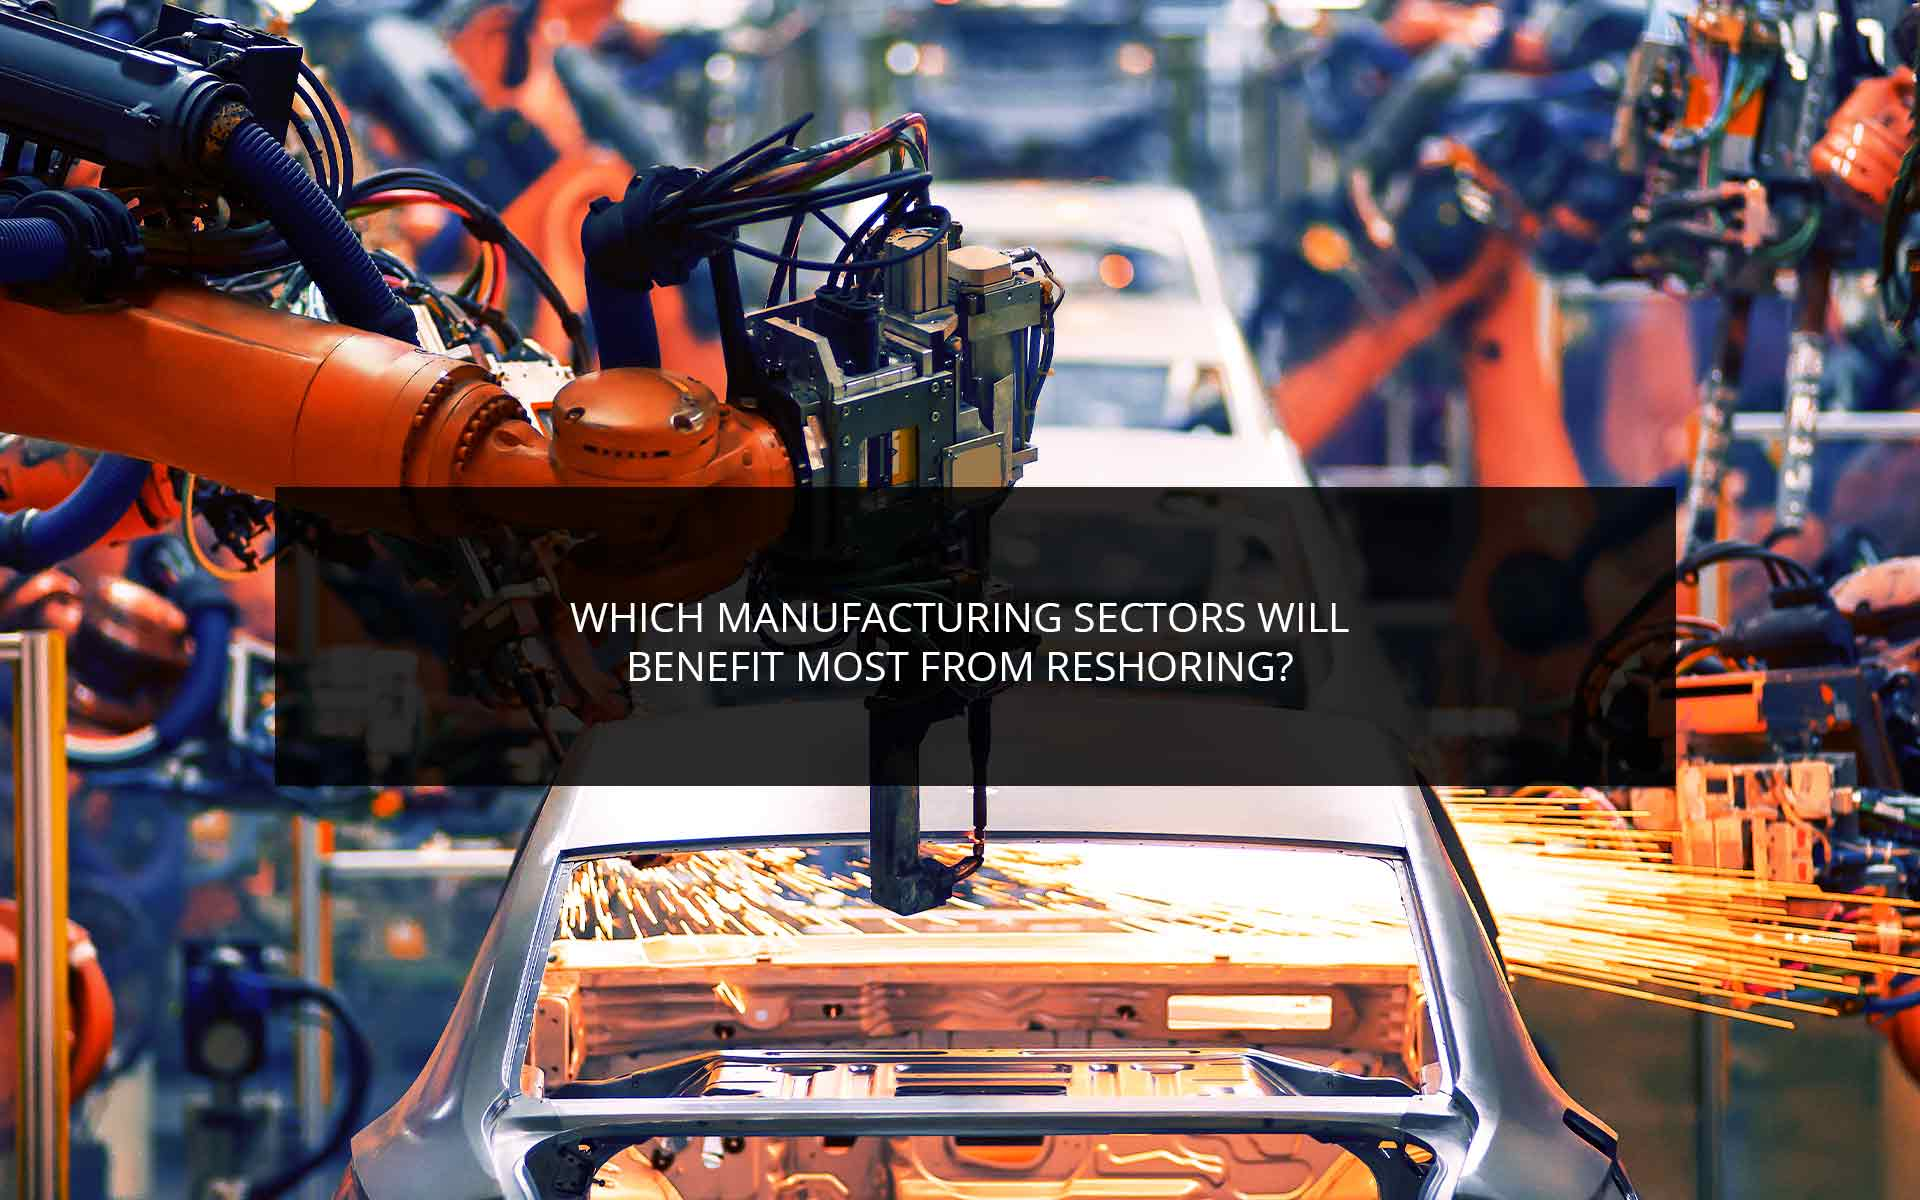 Which Manufacturing Sectors Will Benefit Most From Reshoring?